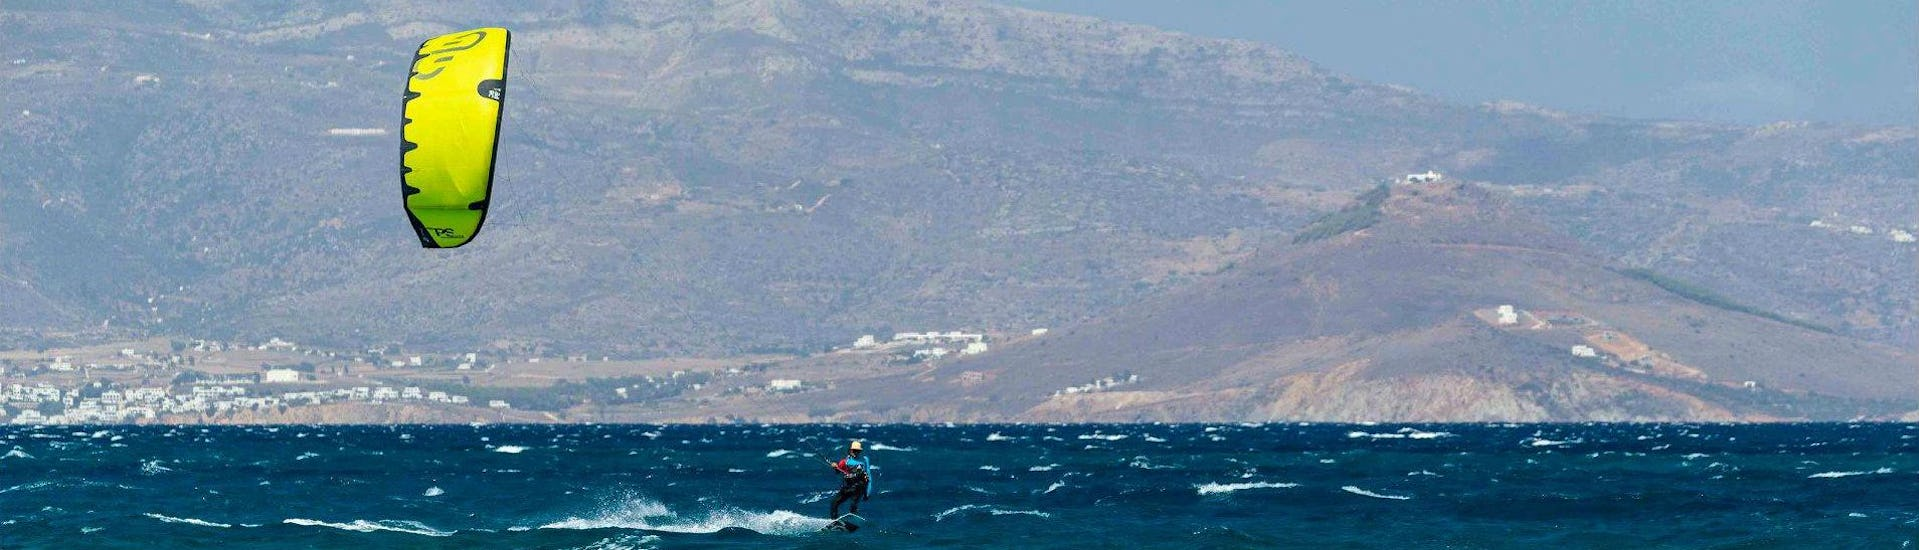 Semi-Private Kitesurfing Lessons - All Levels & Ages